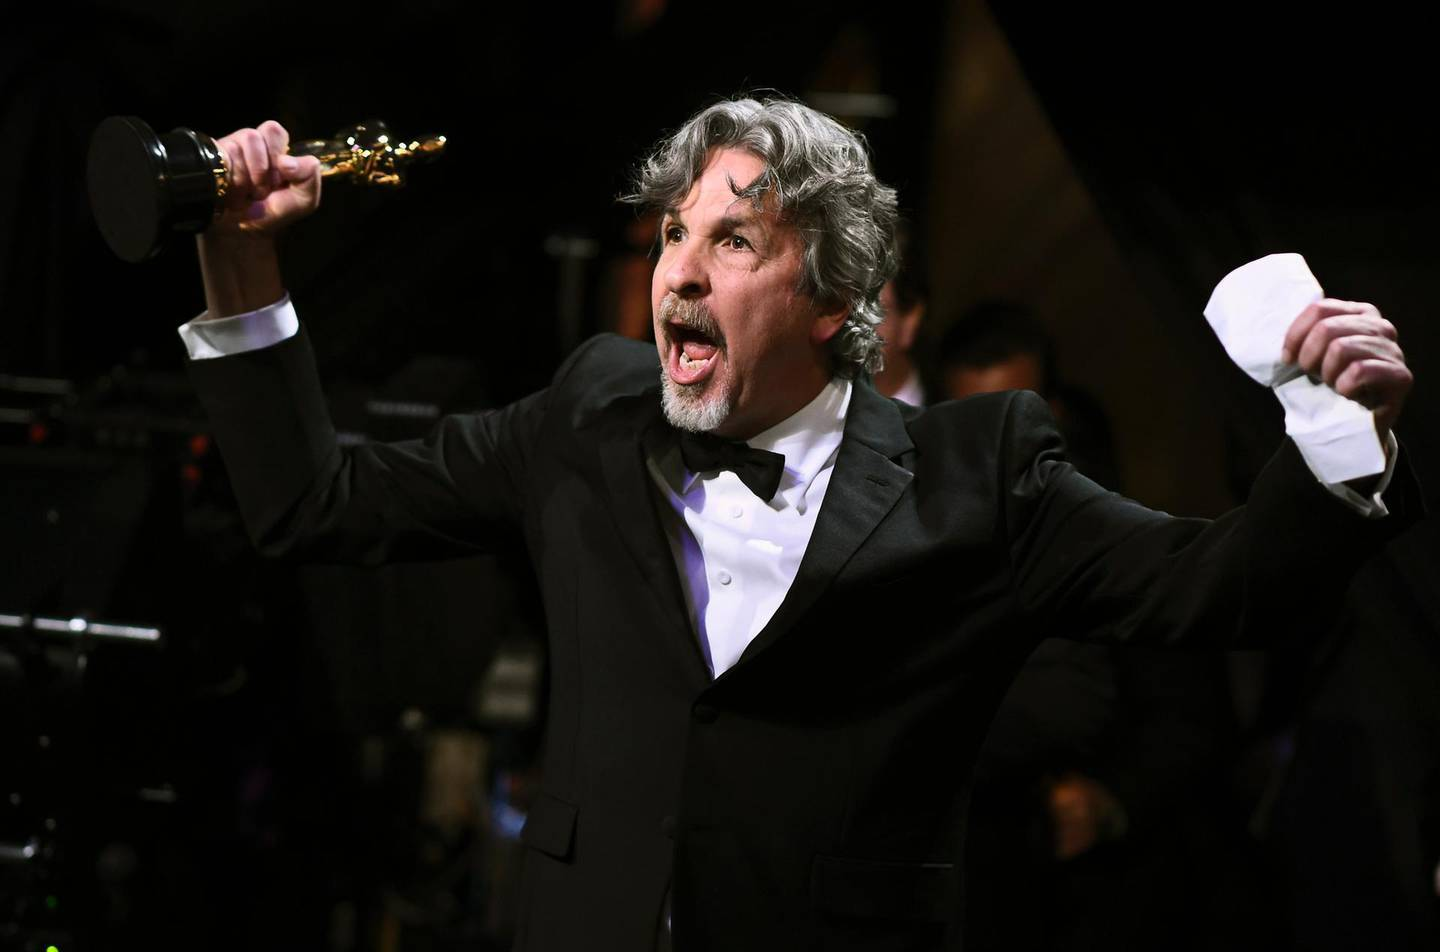 """91st Academy Awards - Oscars Backstage - Hollywood, Los Angeles, California, U.S., February 24, 2019.  """"Green Book"""" director Peter Farrelly reacts.  Matt Petit /A.M.P.A.S./Handout via REUTERS ATTENTION EDITORS. THIS IMAGE HAS BEEN SUPPLIED BY A THIRD PARTY. NO MARKETING OR ADVERTISING IS PERMITTED WITHOUT THE PRIOR CONSENT OF A.M.P.A.S AND MUST BE DISTRIBUTED AS SUCH. MANDATORY CREDIT."""